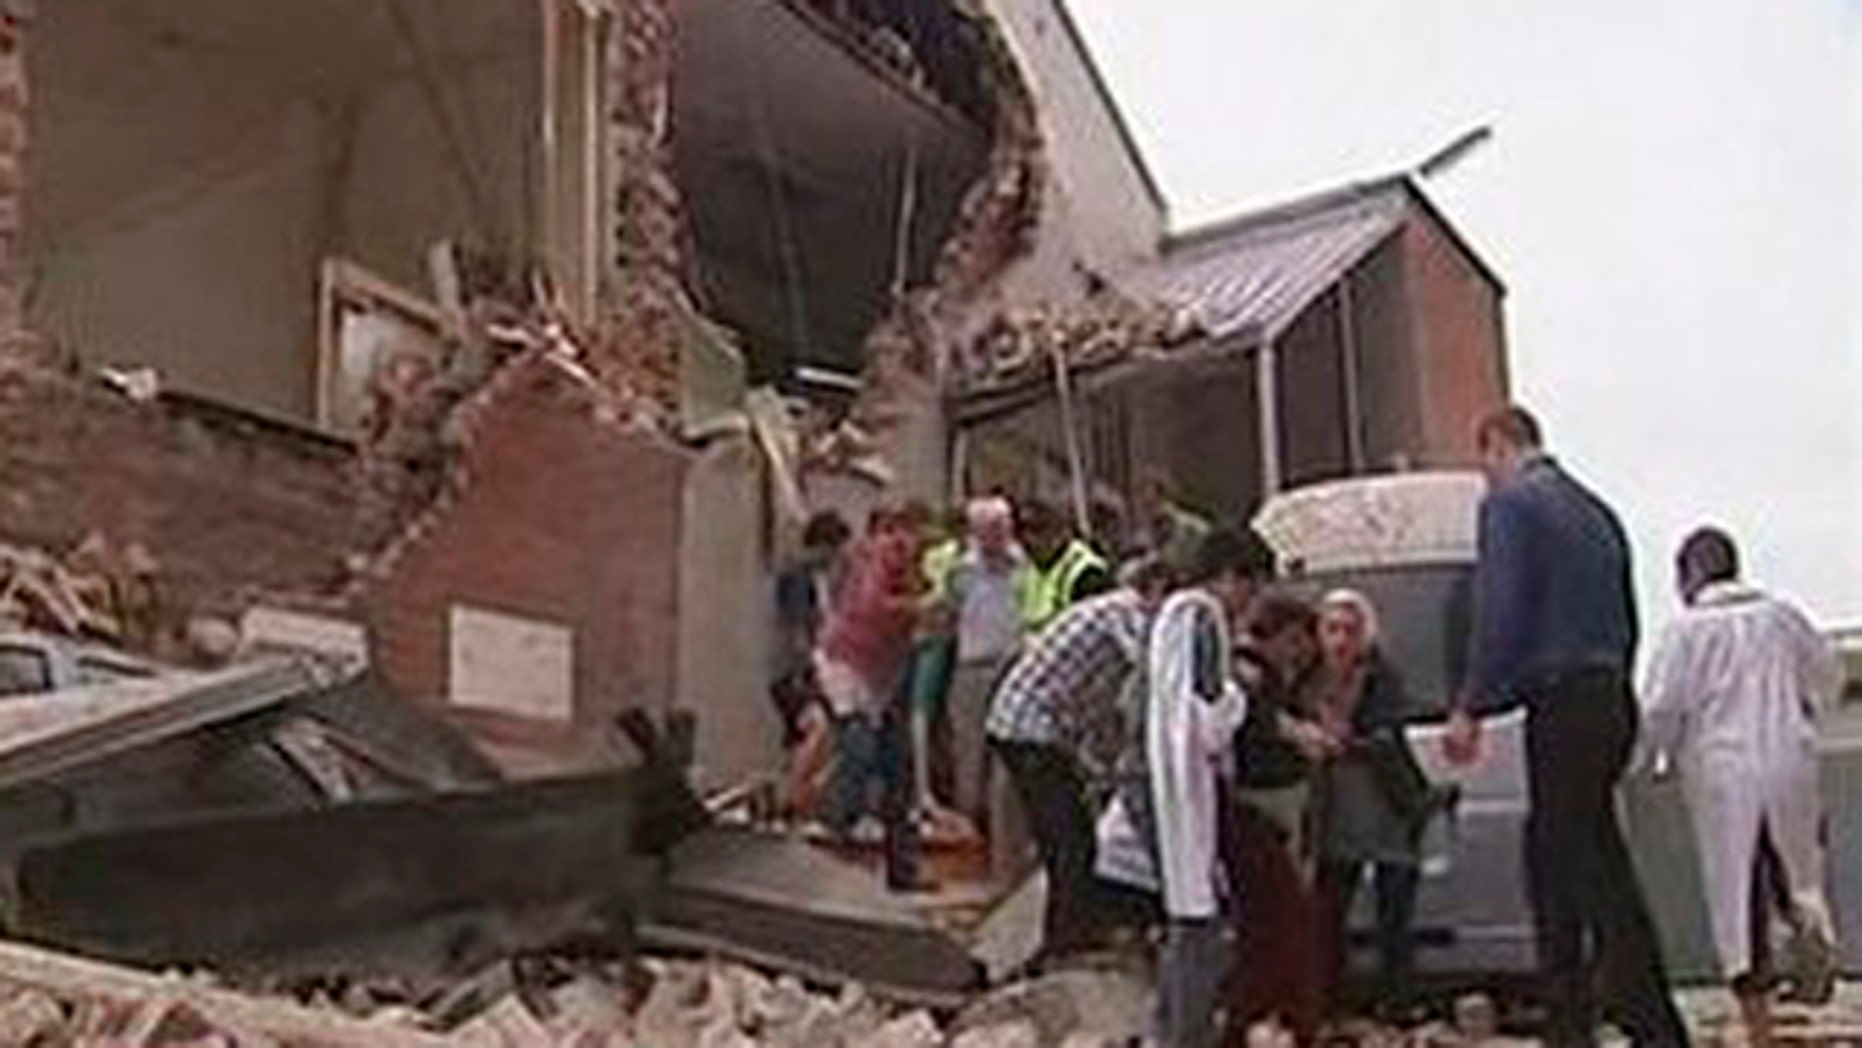 Feb. 22: People are evacuated from a damaged building after an earthquake in Christchurch, New Zealand.